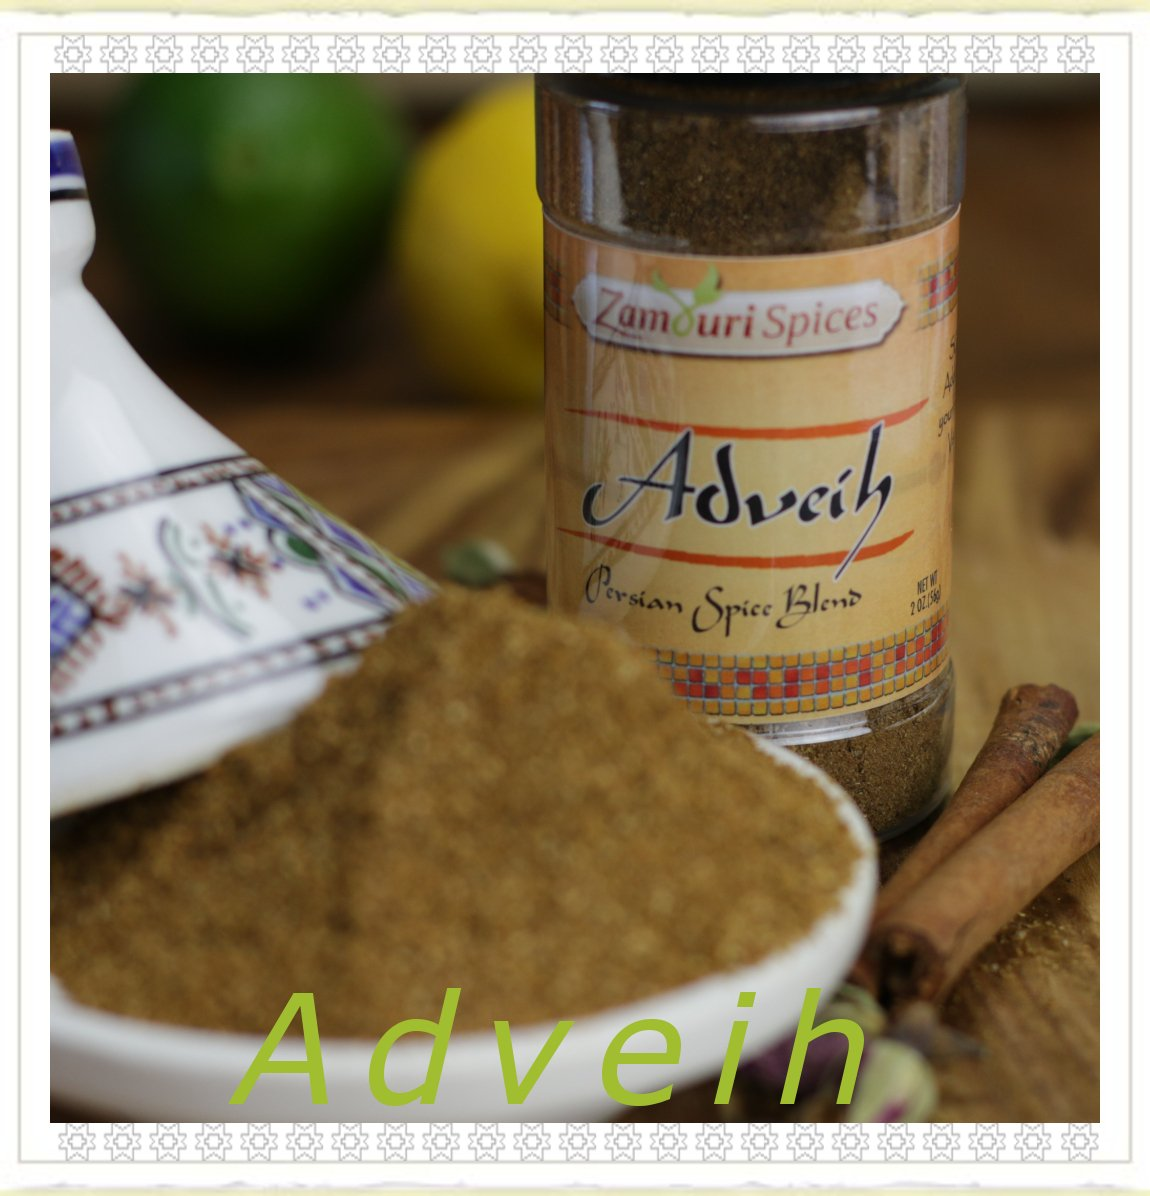 Adveih (Advieh) Persian Spice 2 oz by Zamouri Spices